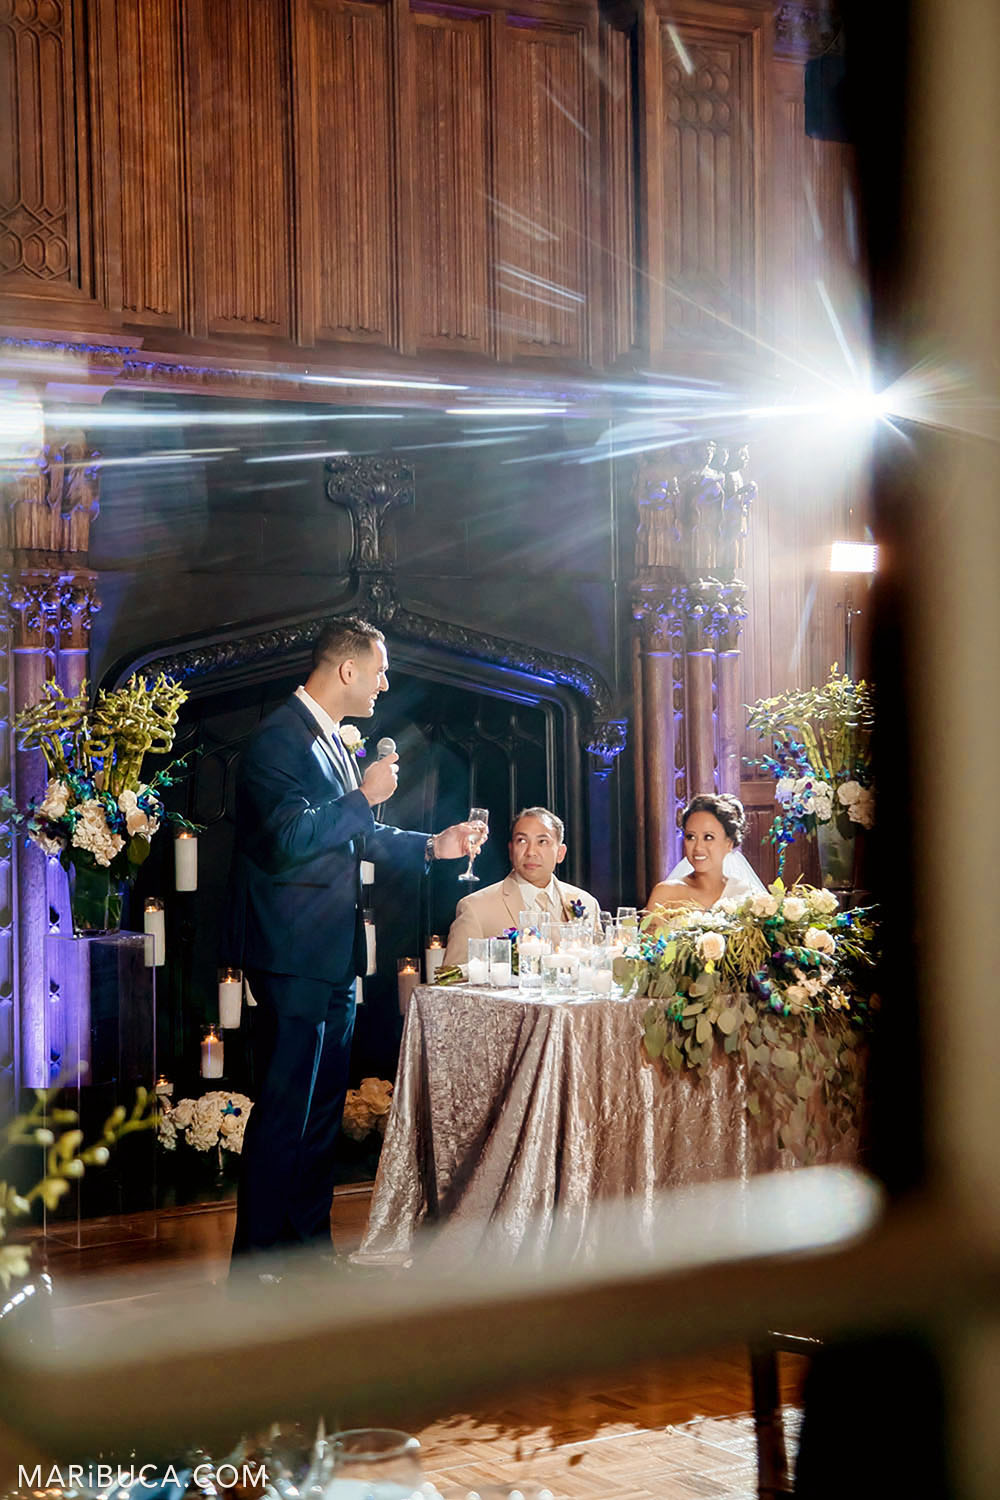 Best man toast for newlyweds couple in the Great Hall, Kohl Mansion, Burlingame